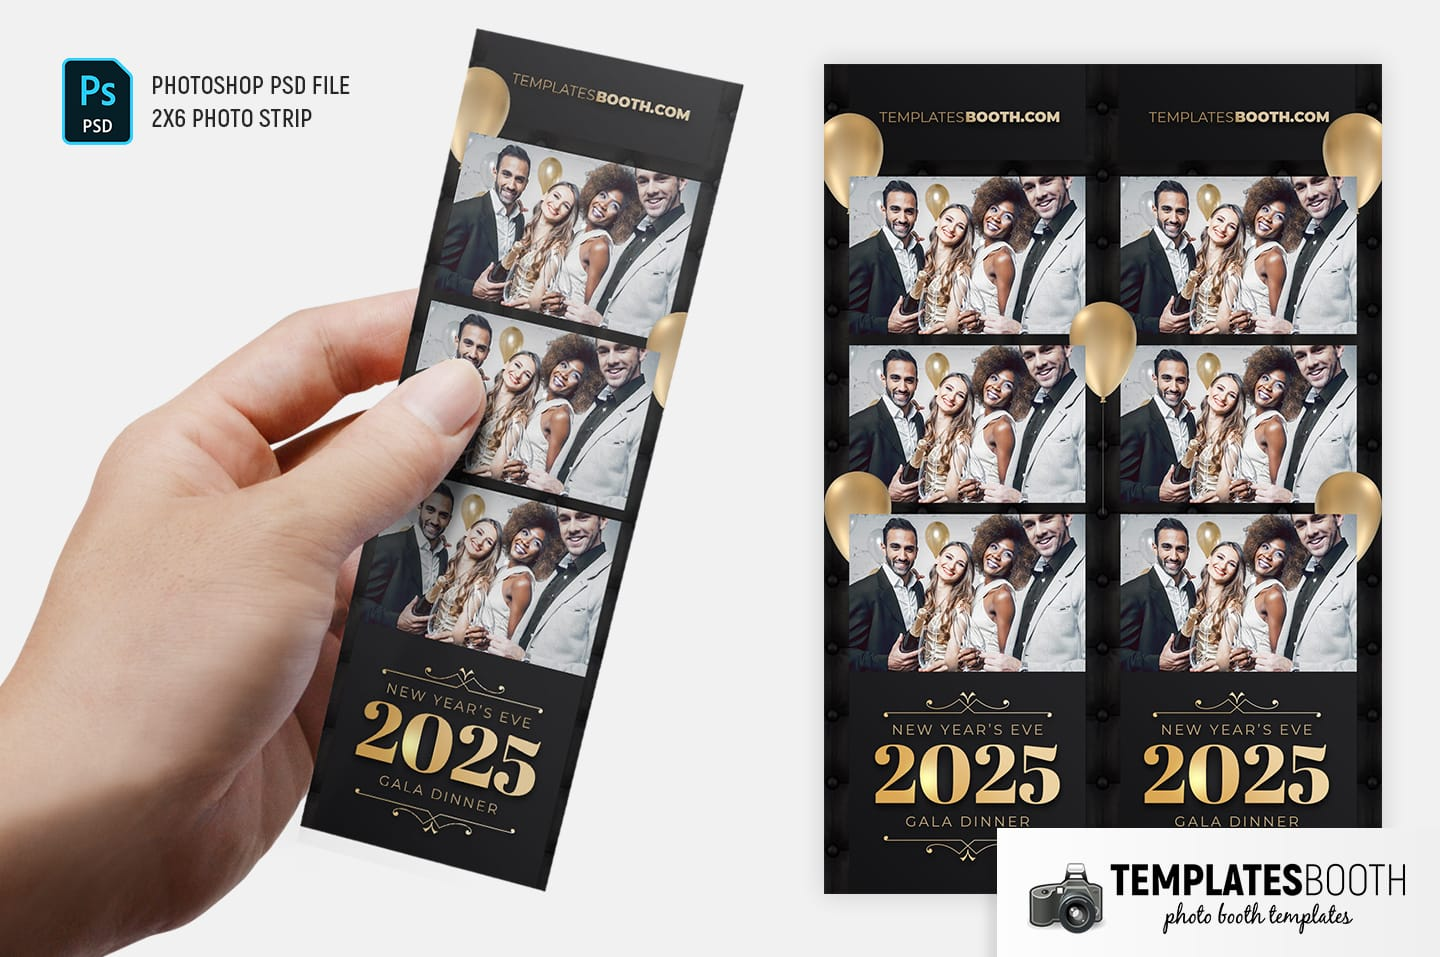 New Year's Eve Party Photo Booth Template (2x6 photo strip)